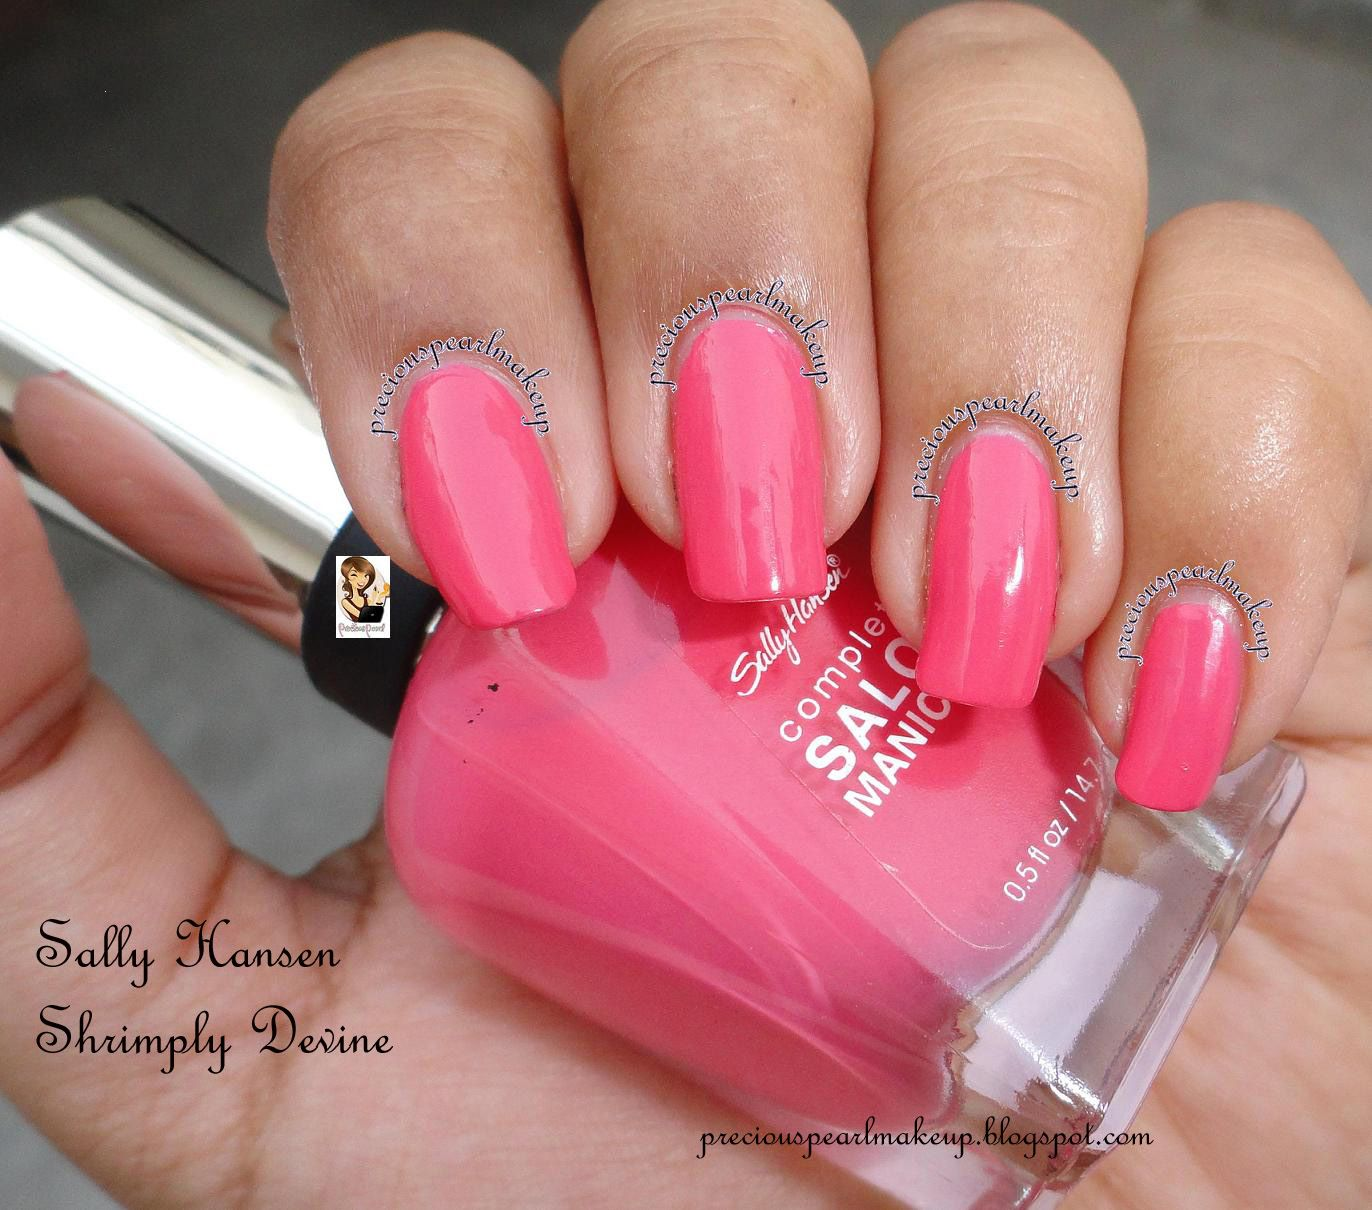 Sally Hansen Complete Salon Manicure perfectly poppy | Shrimply ...